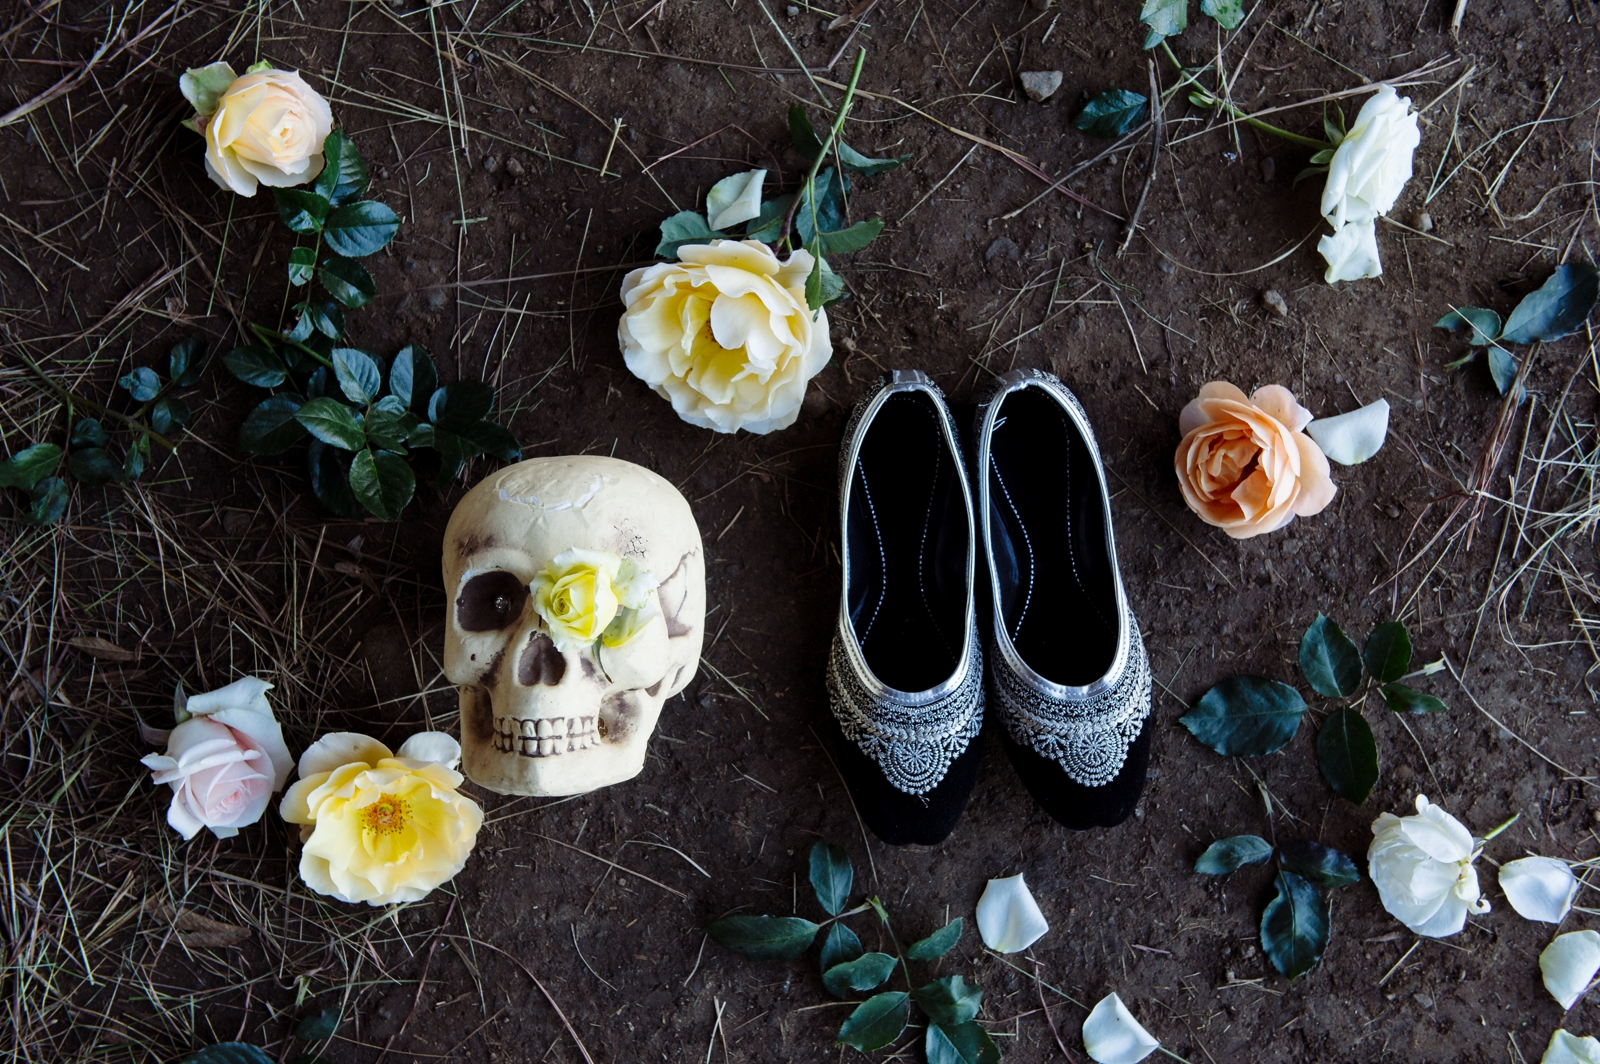 Skull and shoes